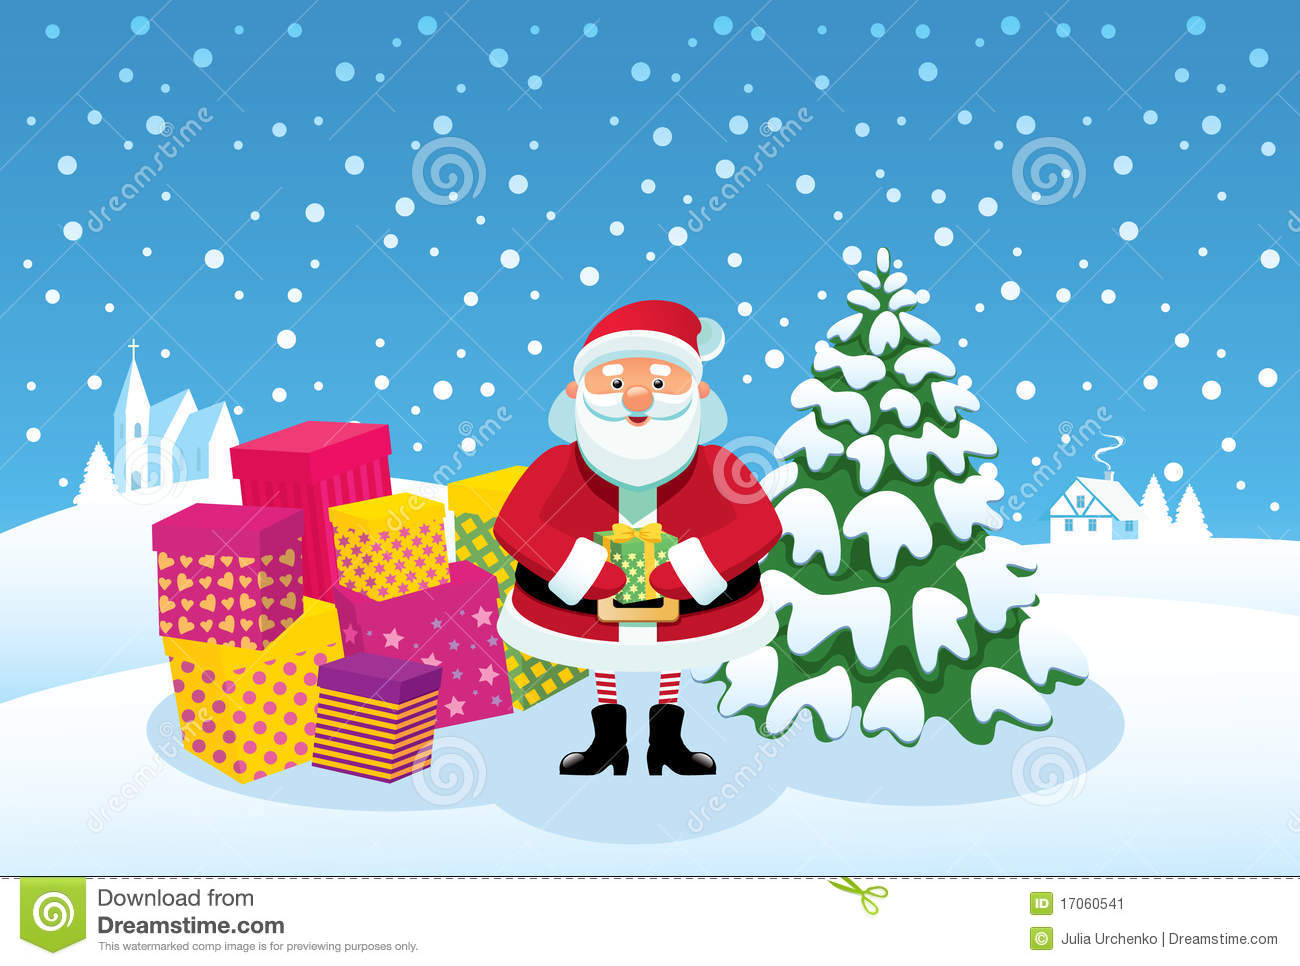 Santa claus with gifts viewing gallery